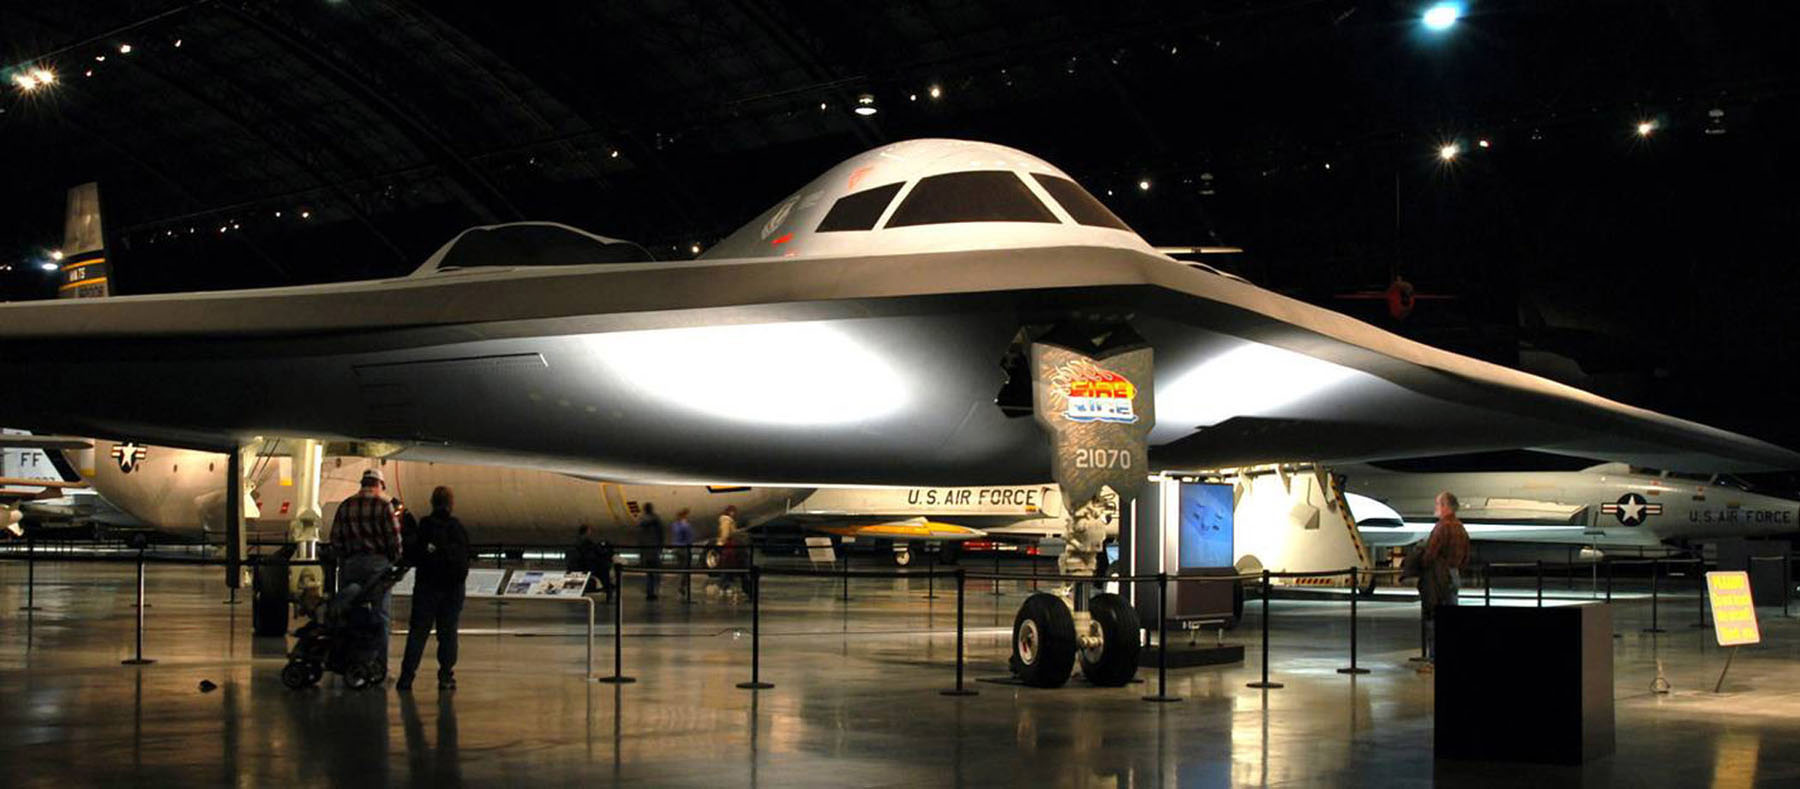 northrop b 2 spirit national museum of the us air force display. Black Bedroom Furniture Sets. Home Design Ideas